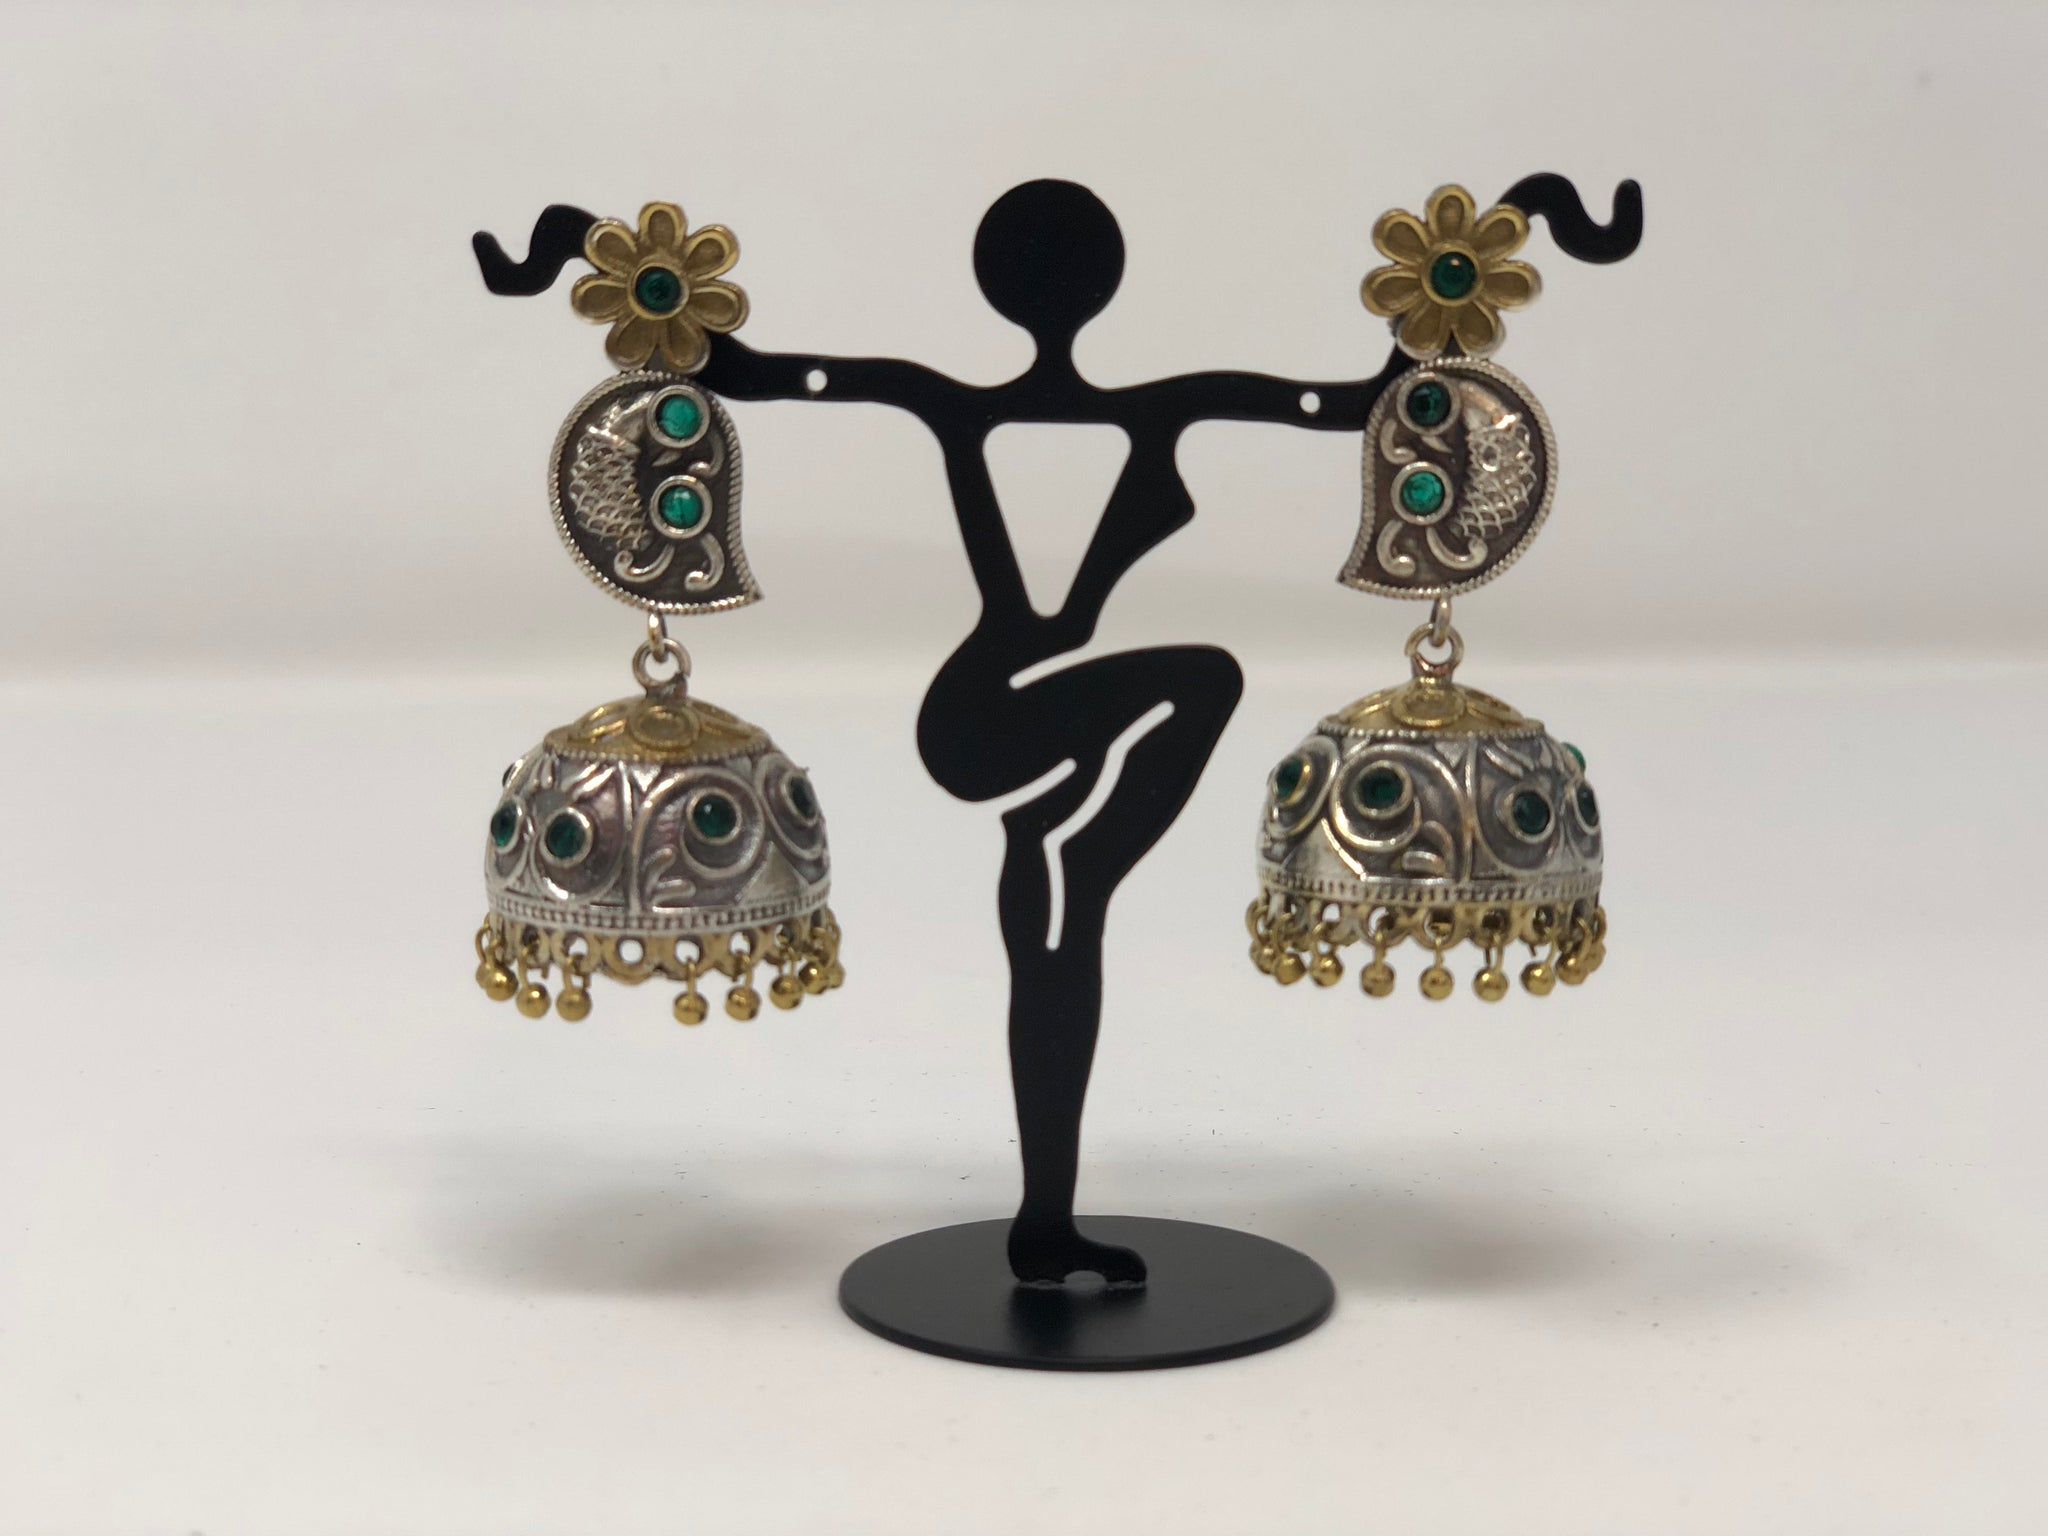 Oxidized Silver and Gold Jhumkas with Green Stones - Sakkhi Style